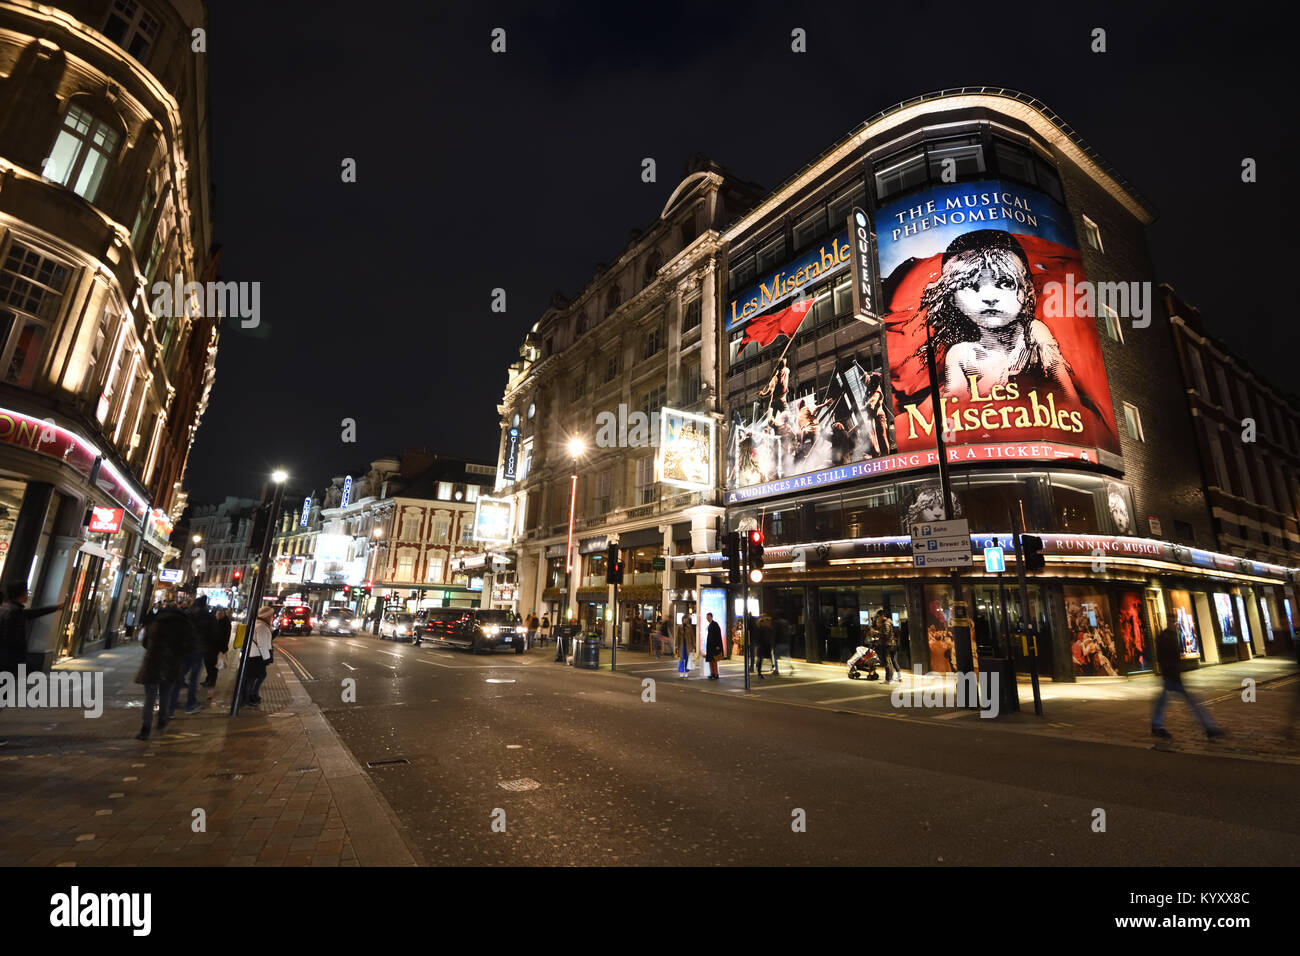 leicester square city crossroads on a January evening in 2018 showing theaters, traffic and people. - Stock Image